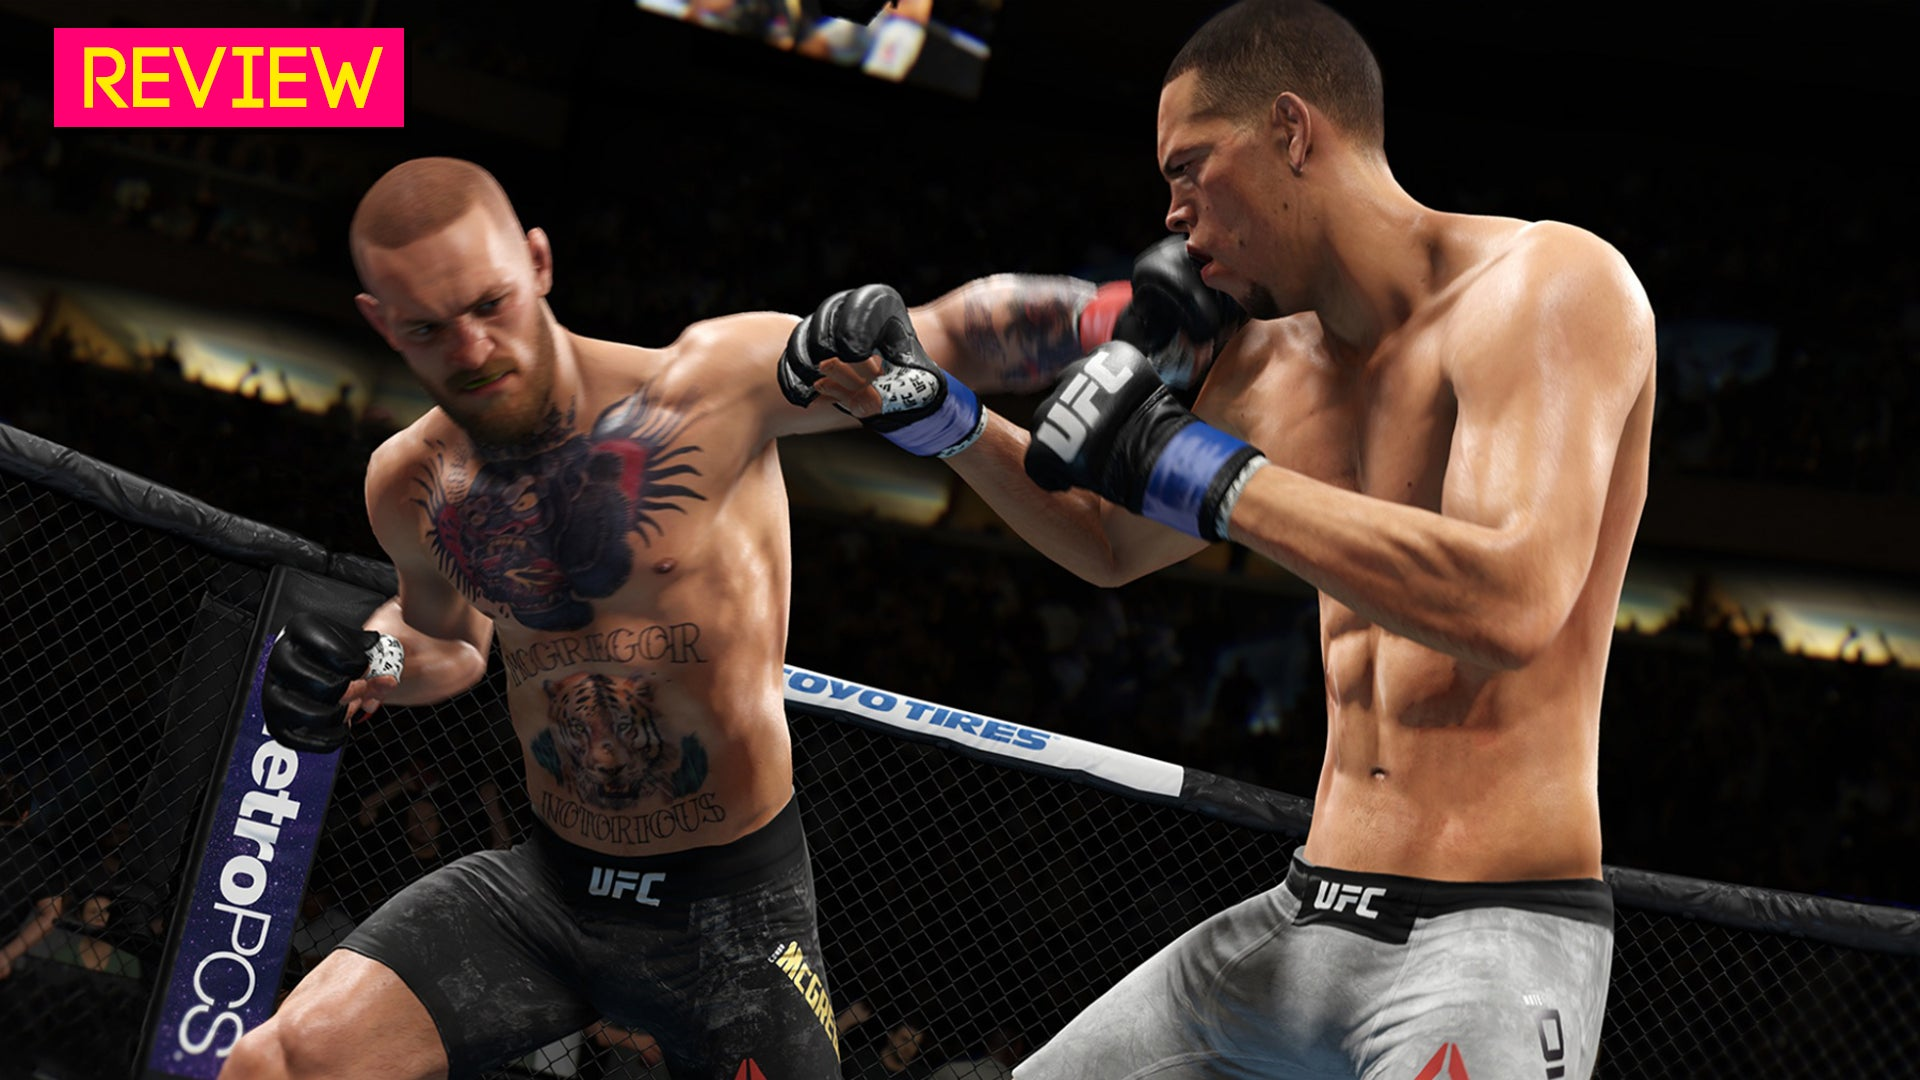 EA UFC 3: The Kotaku Review